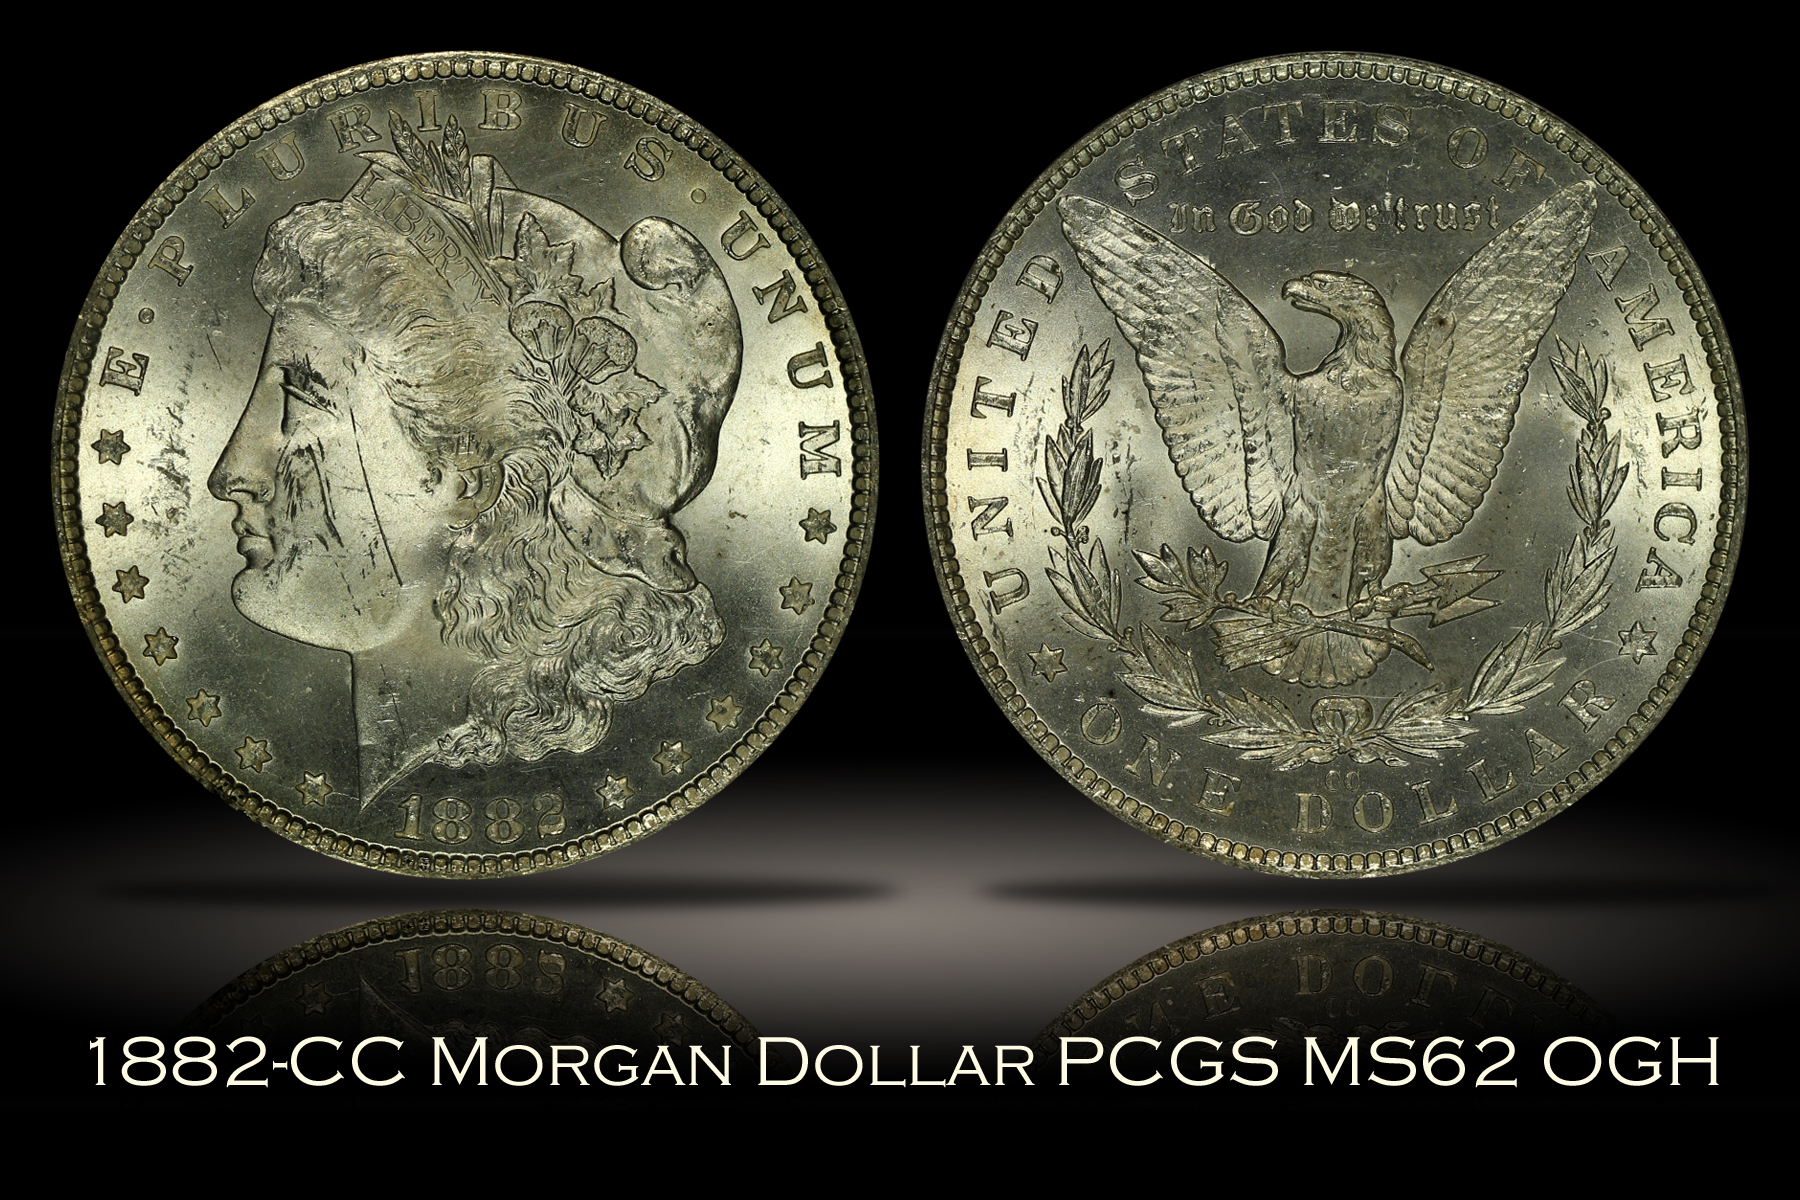 1882-CC Morgan Dollar PCGS MS62 OGH